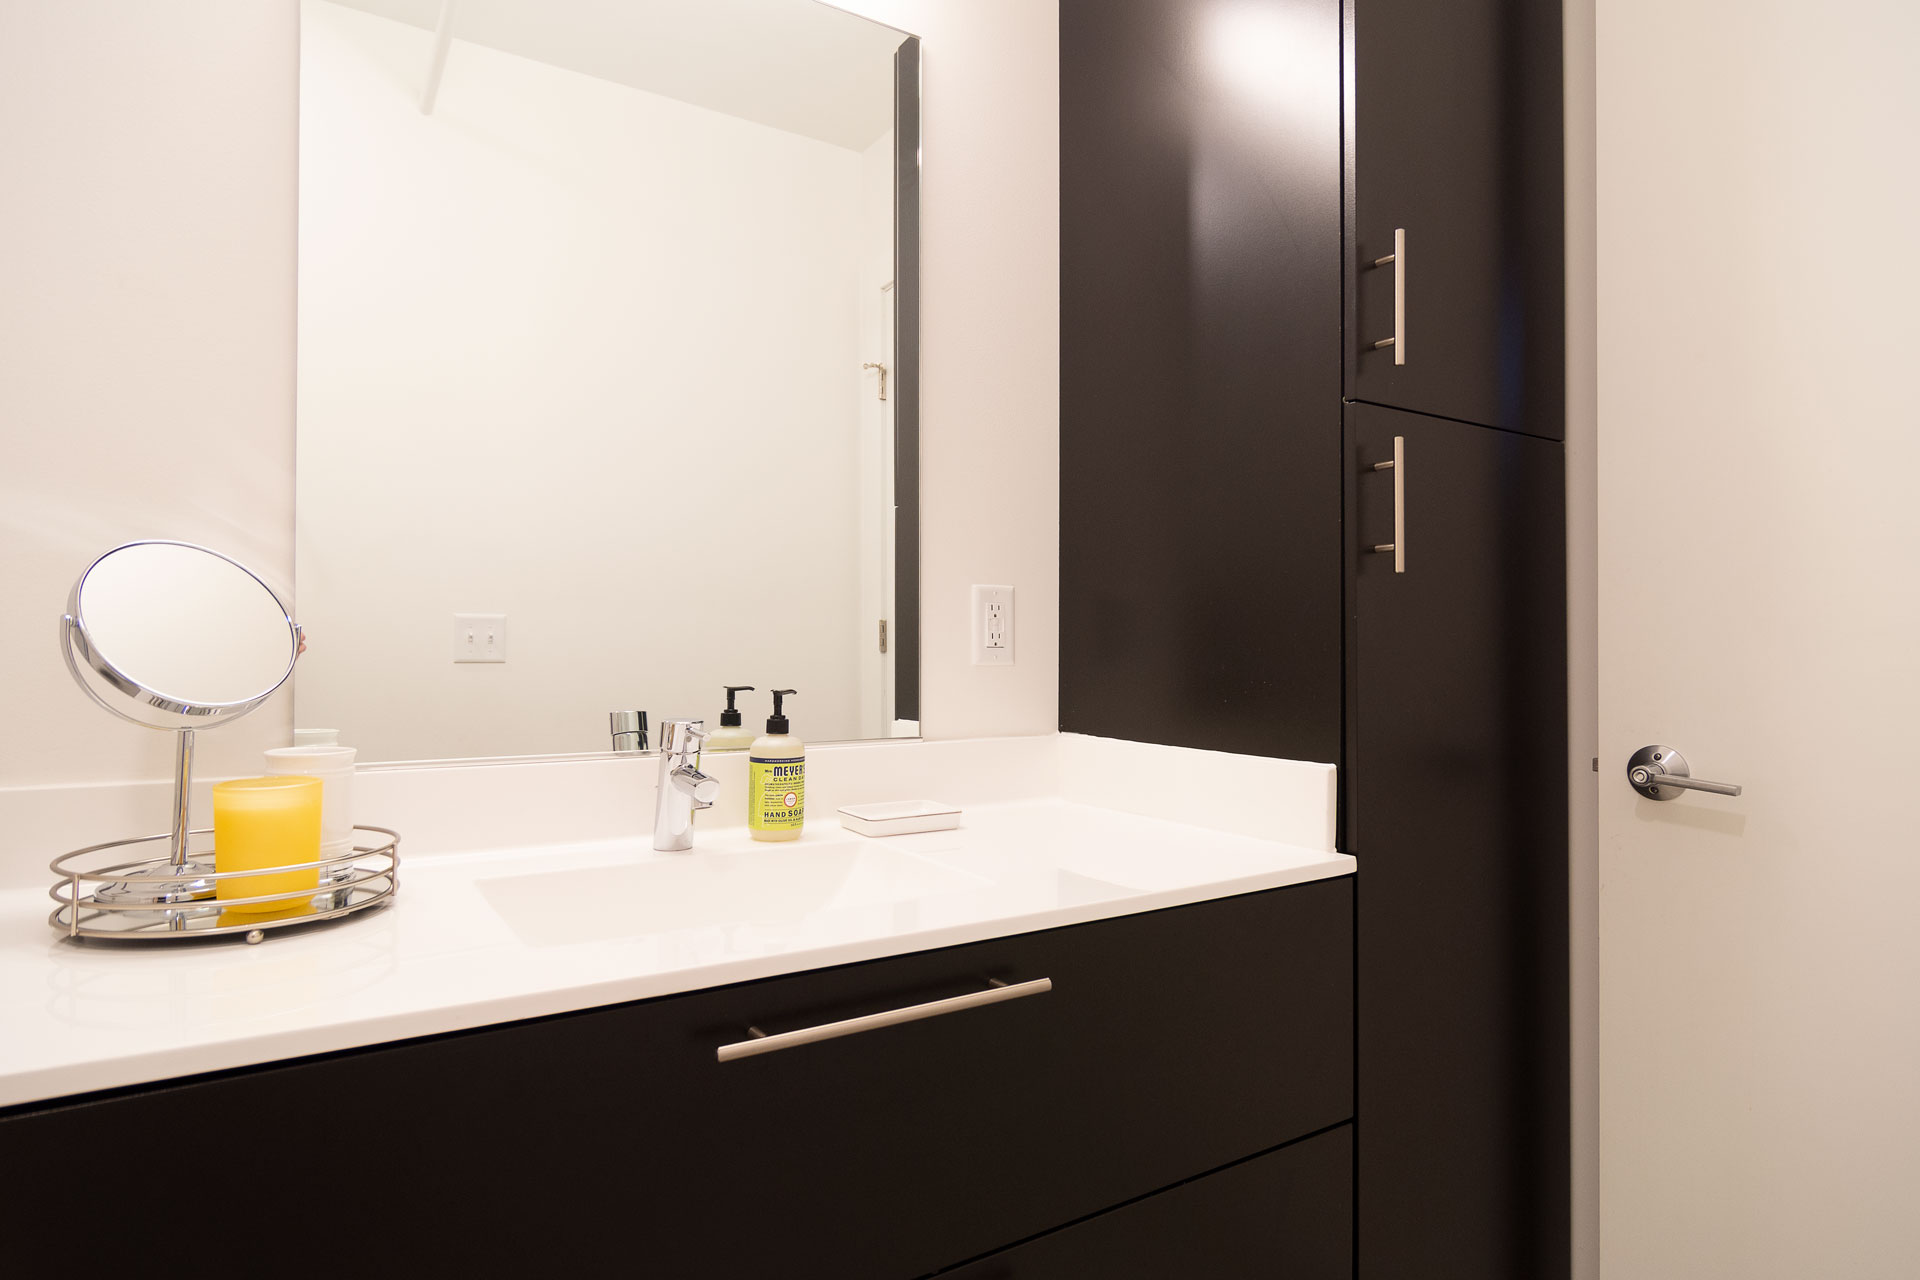 Bathroom Mirror and Counter Space